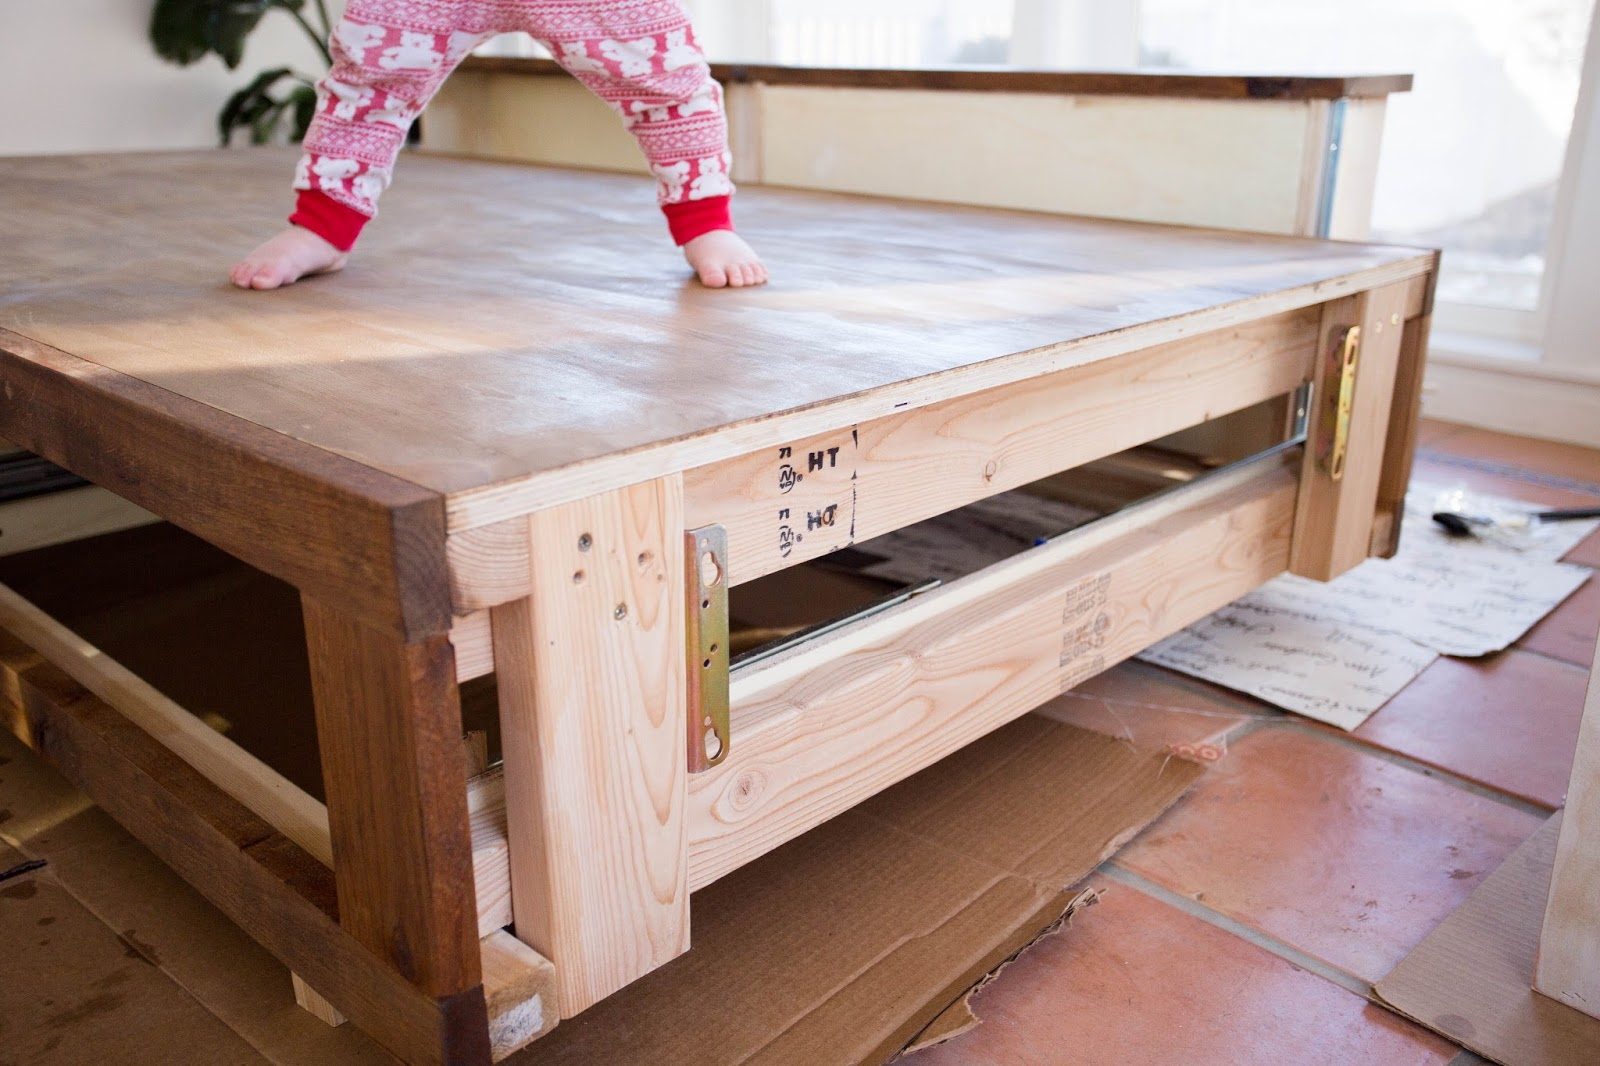 Epic Headboard footboard drawers with soft close slides no pinched fingers